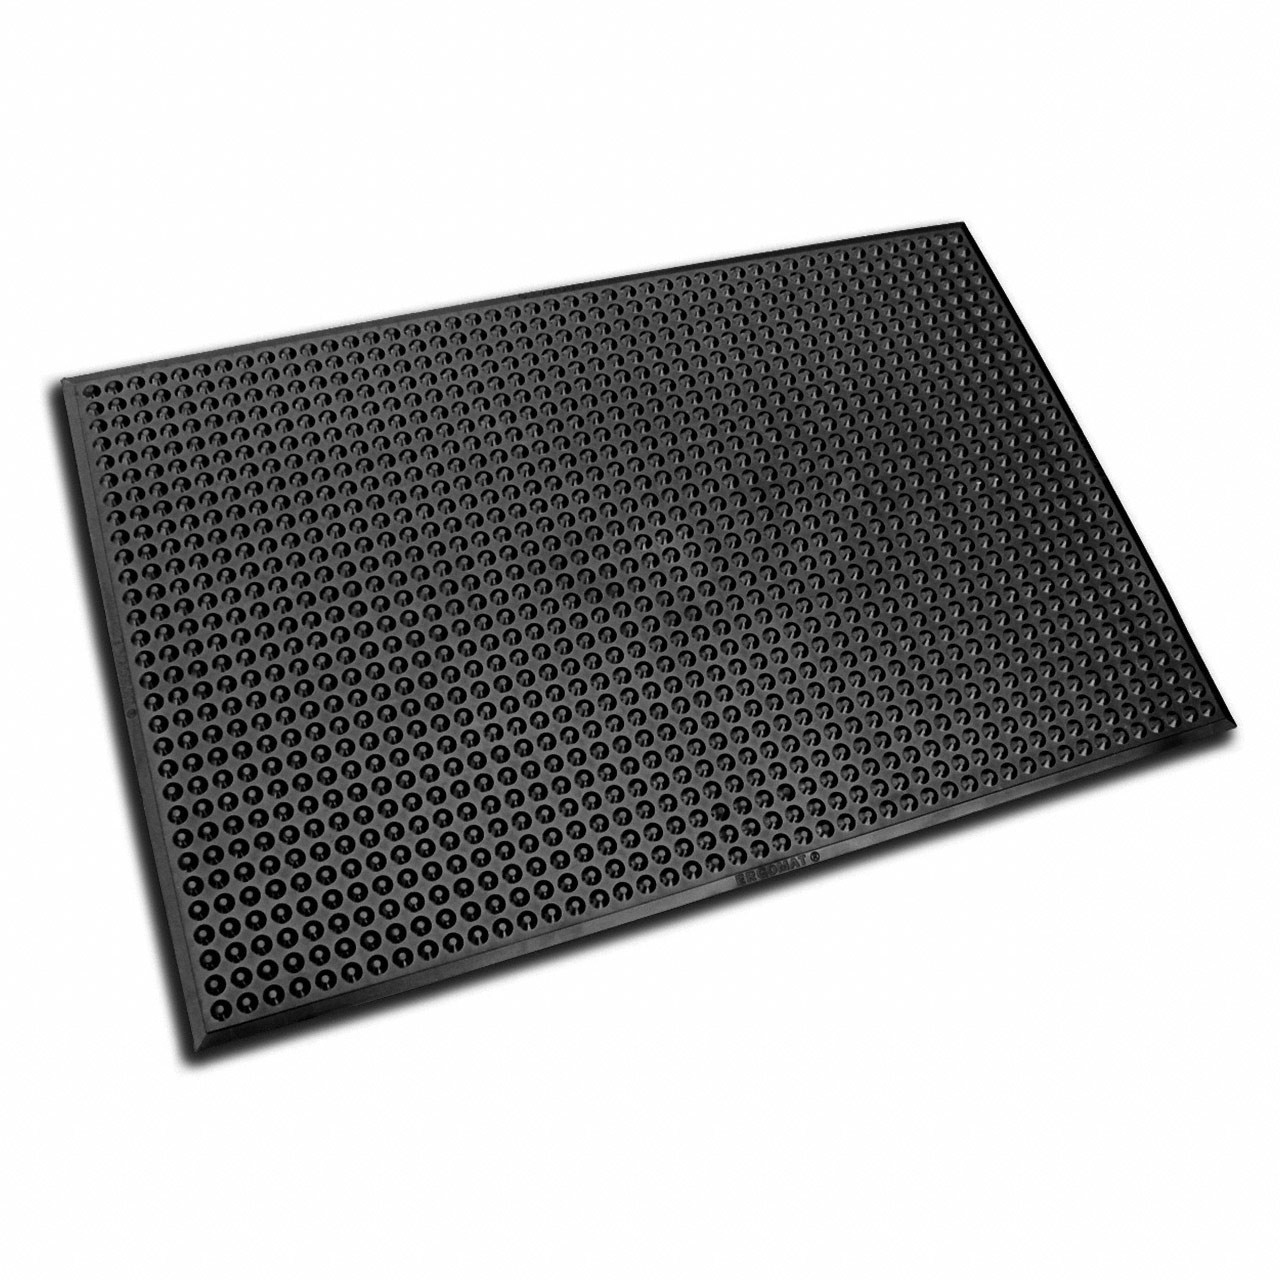 Ergomat Nitril anti-fatigue matting